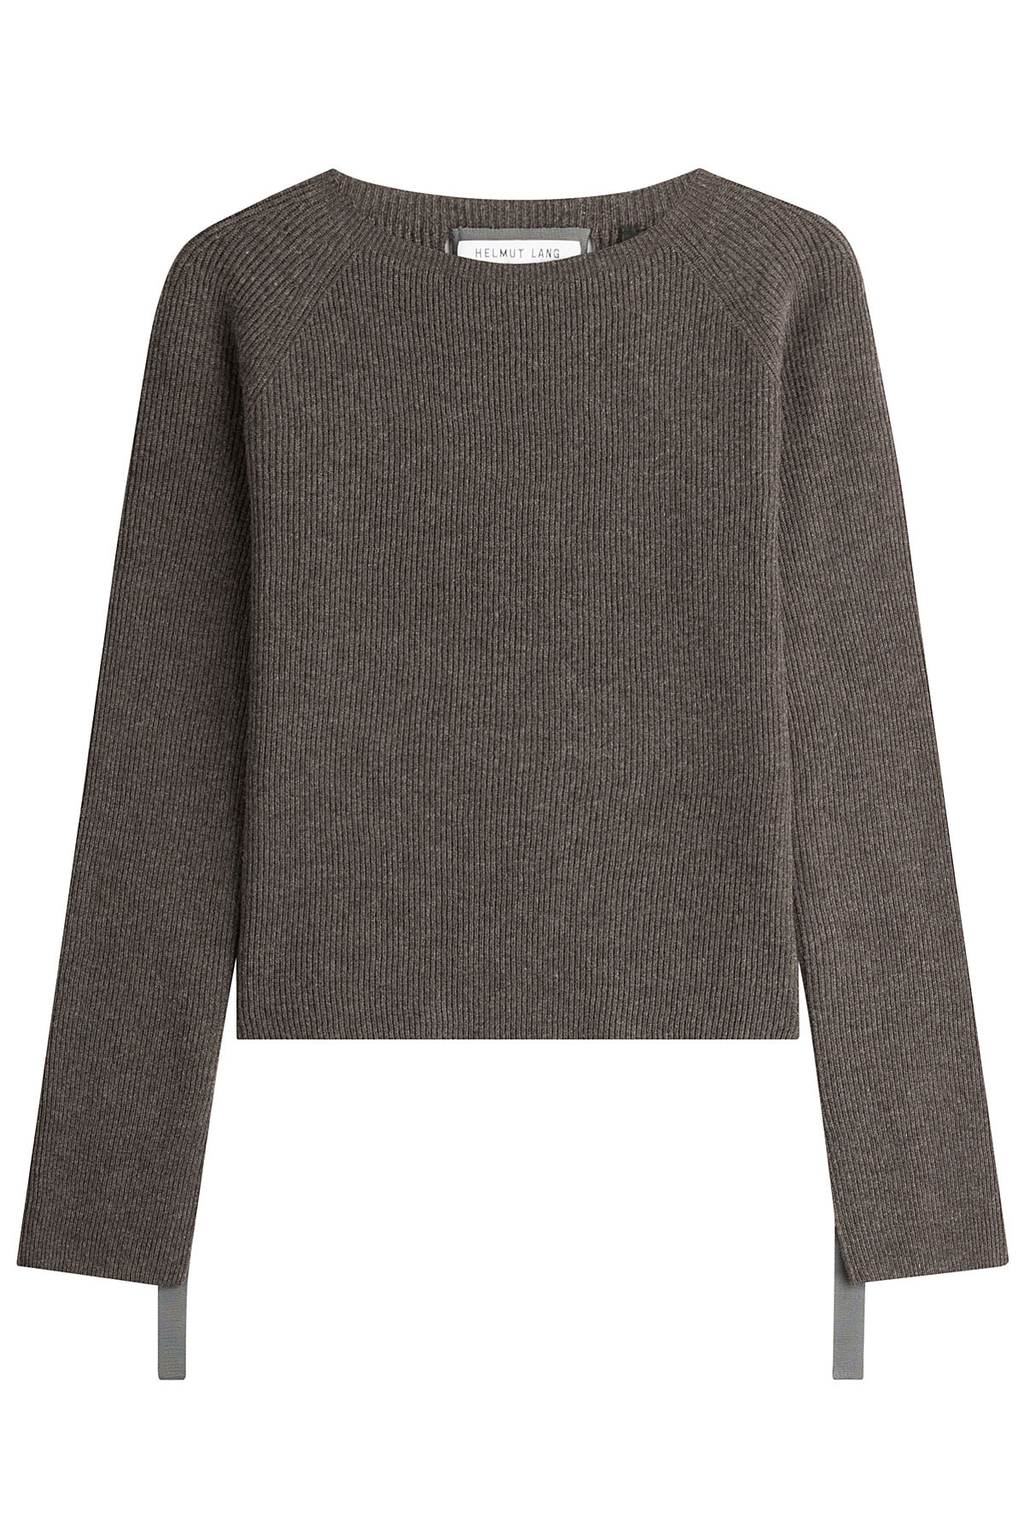 Wool Pullover With Cashmere - pattern: plain; style: standard; predominant colour: charcoal; occasions: casual; length: standard; fibres: wool - mix; fit: standard fit; neckline: crew; sleeve length: long sleeve; sleeve style: standard; texture group: knits/crochet; pattern type: fabric; wardrobe: basic; season: a/w 2016